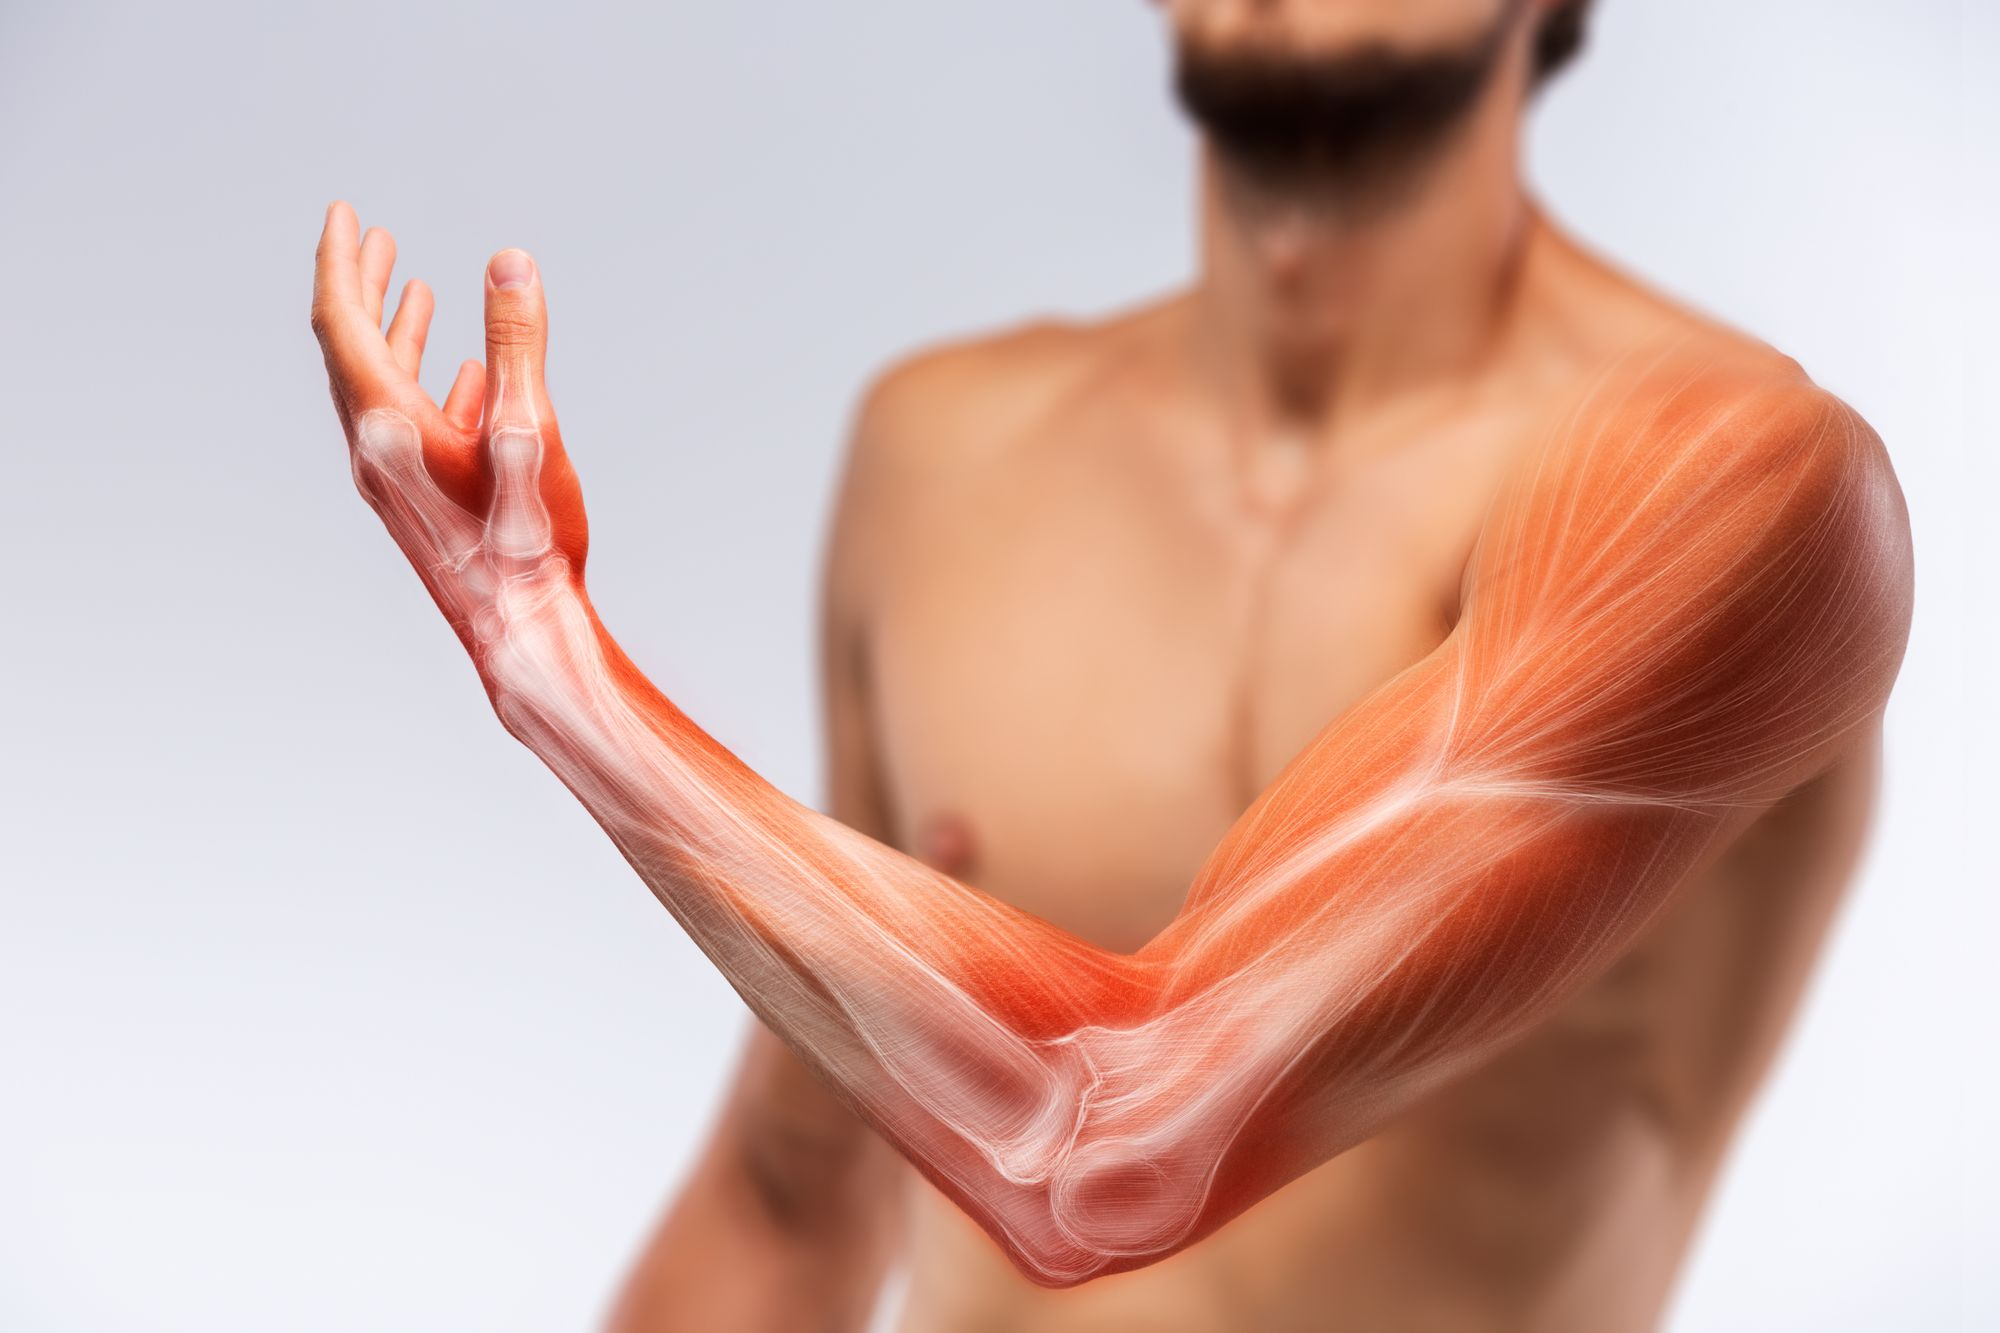 Stroke Lingo Part 3: Muscle Function Changes After Stroke